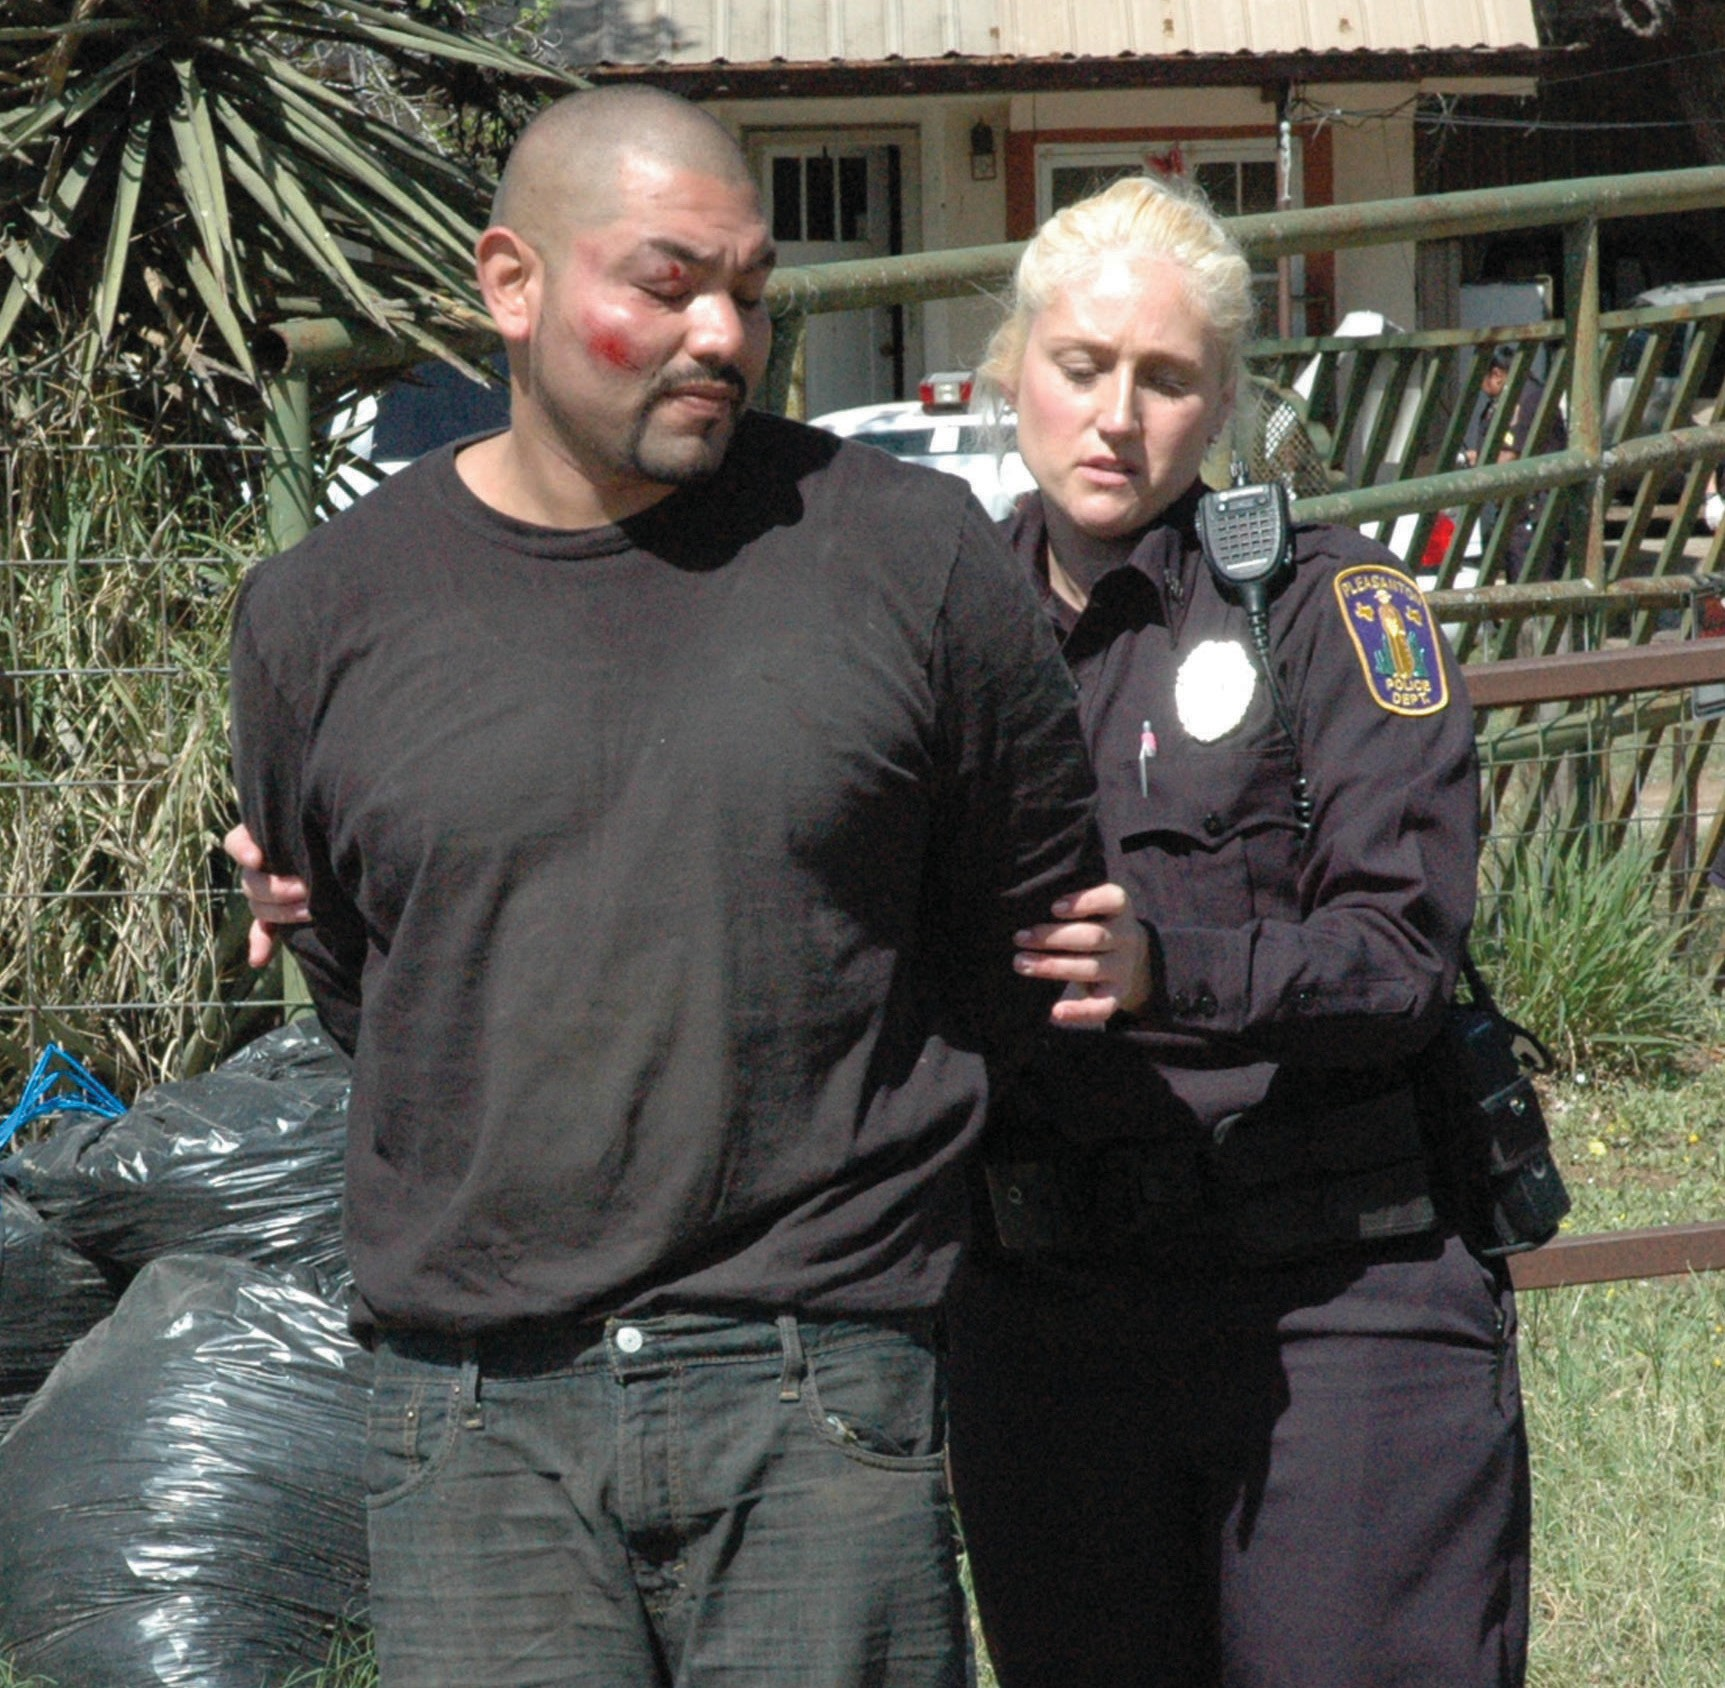 Alejandro Guerra, 29, is taken into custody by Pleasanton Police Officer Jessi Mertz. Guerra was charged with possession of a controlled substance, Methamphetamine.